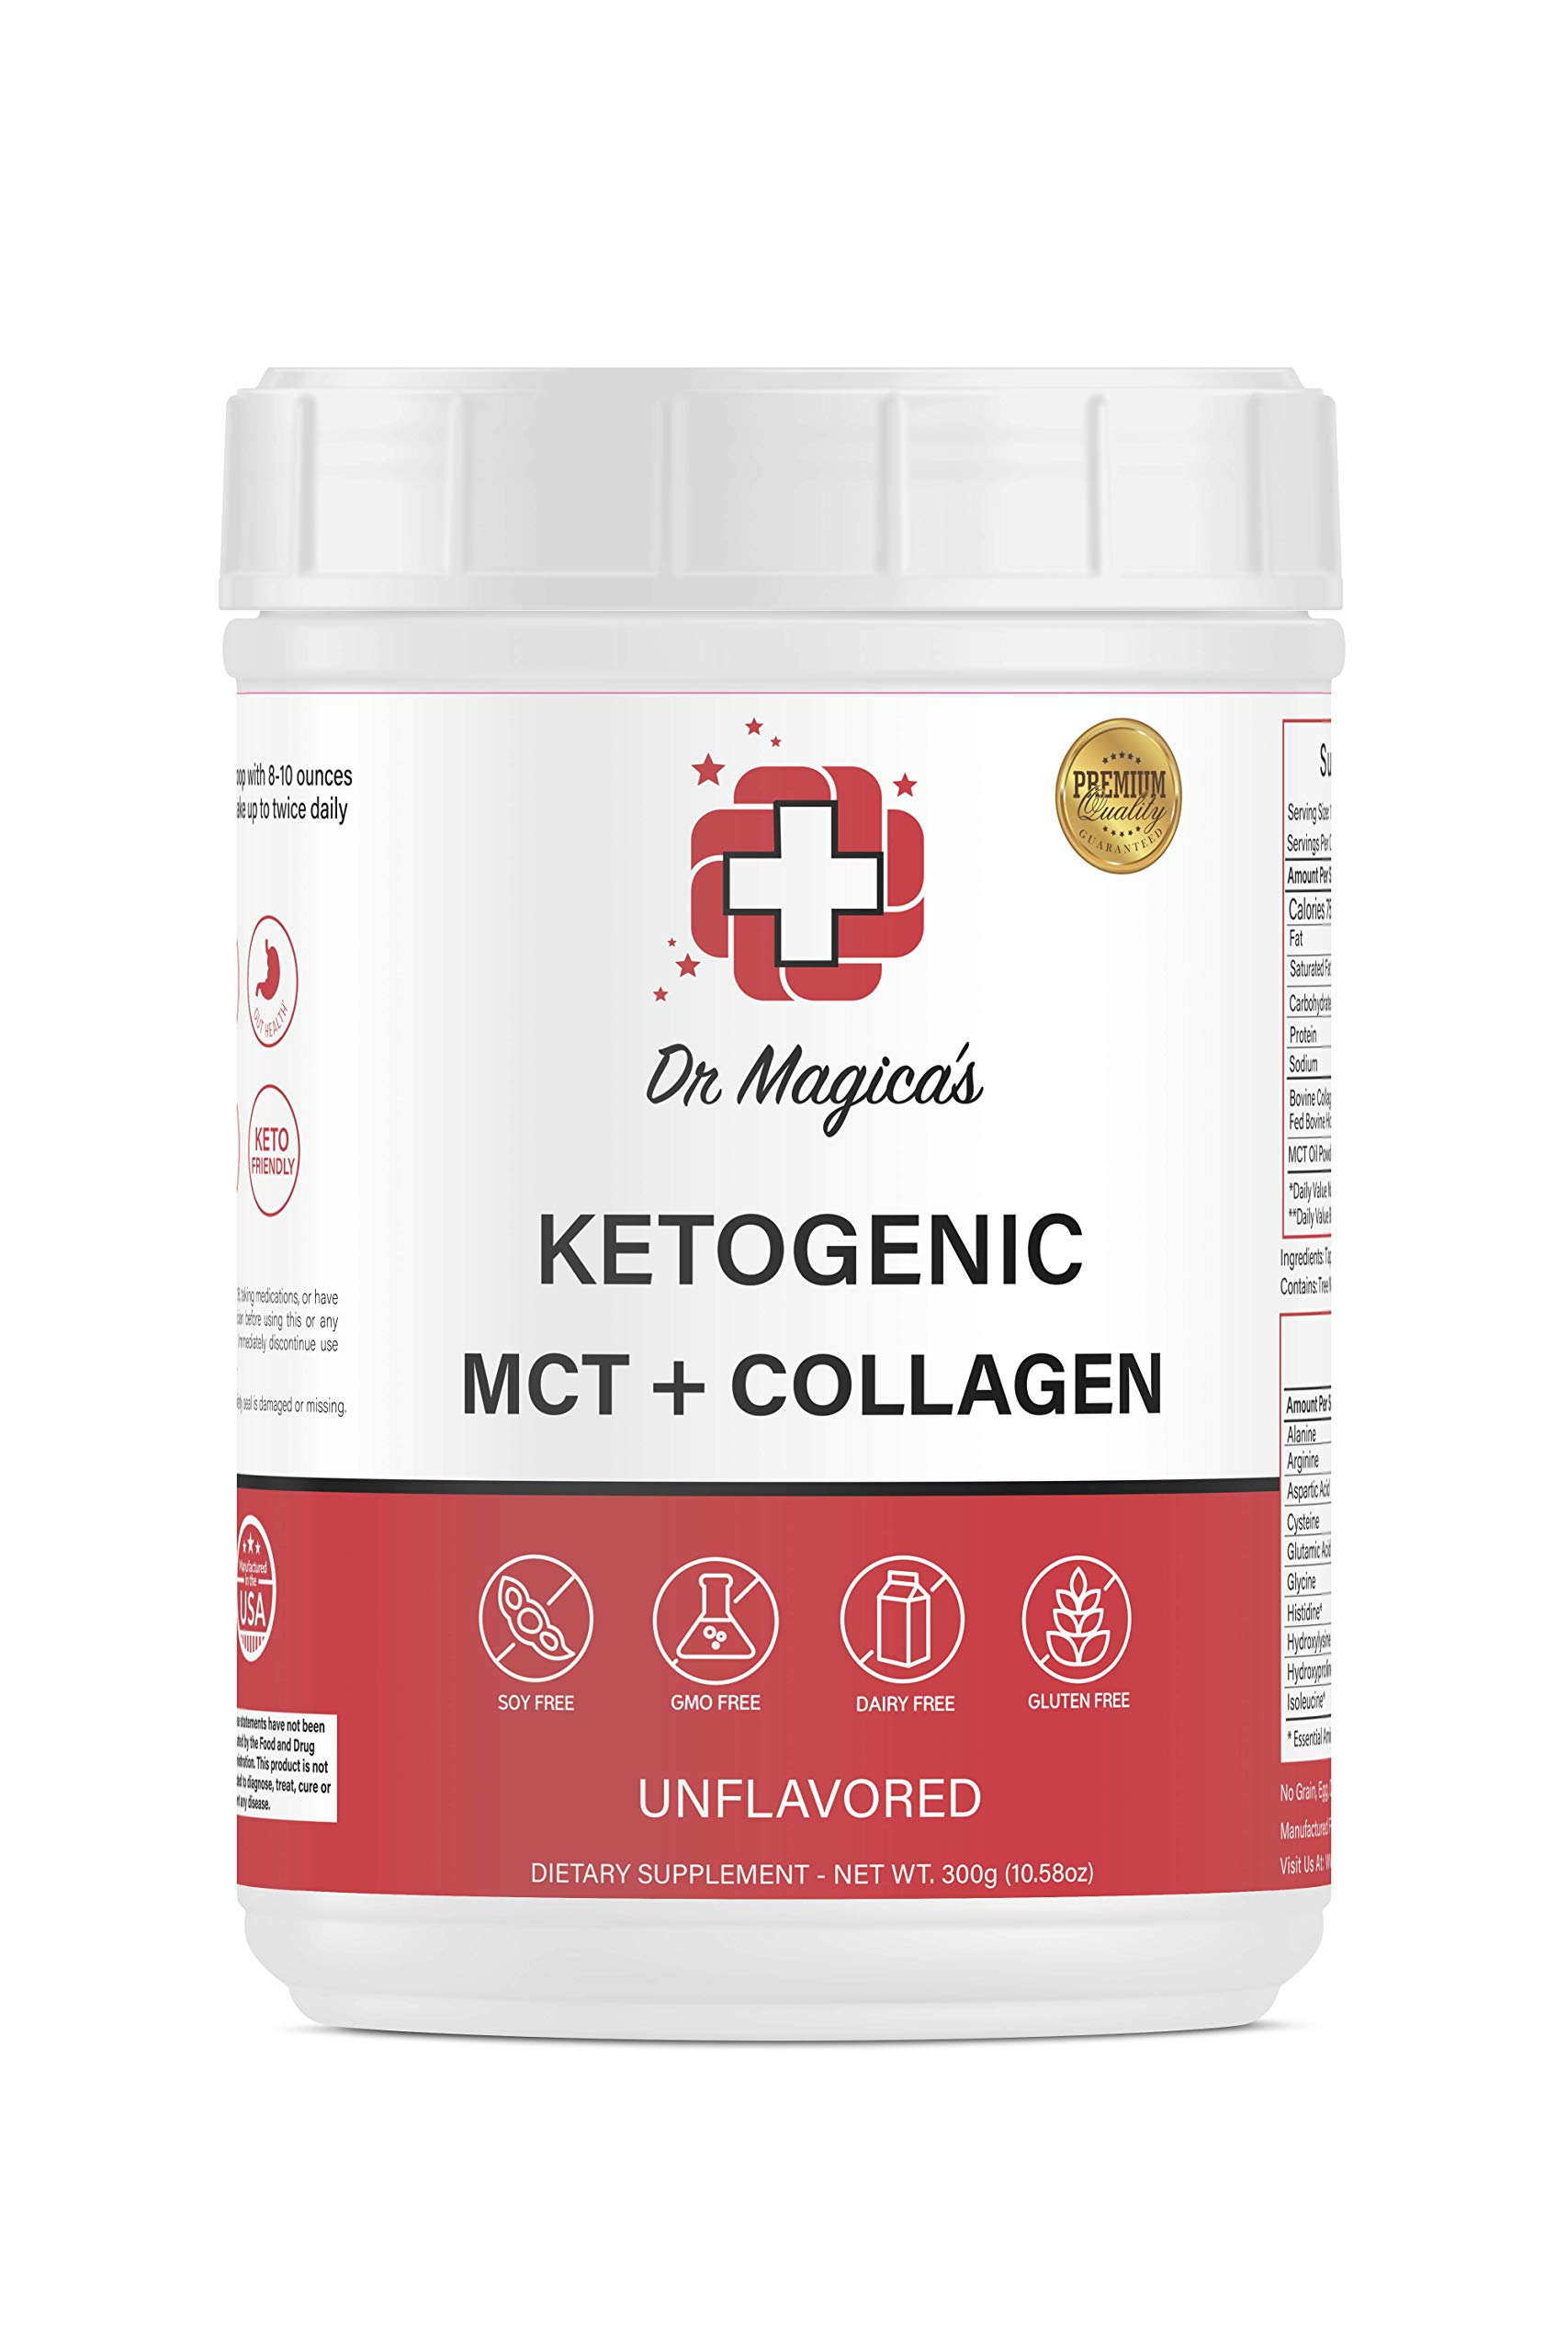 Dr Magica's Ketogenic MCT & Collagen Powder Combo for Keto Diet by Dr. Magica's